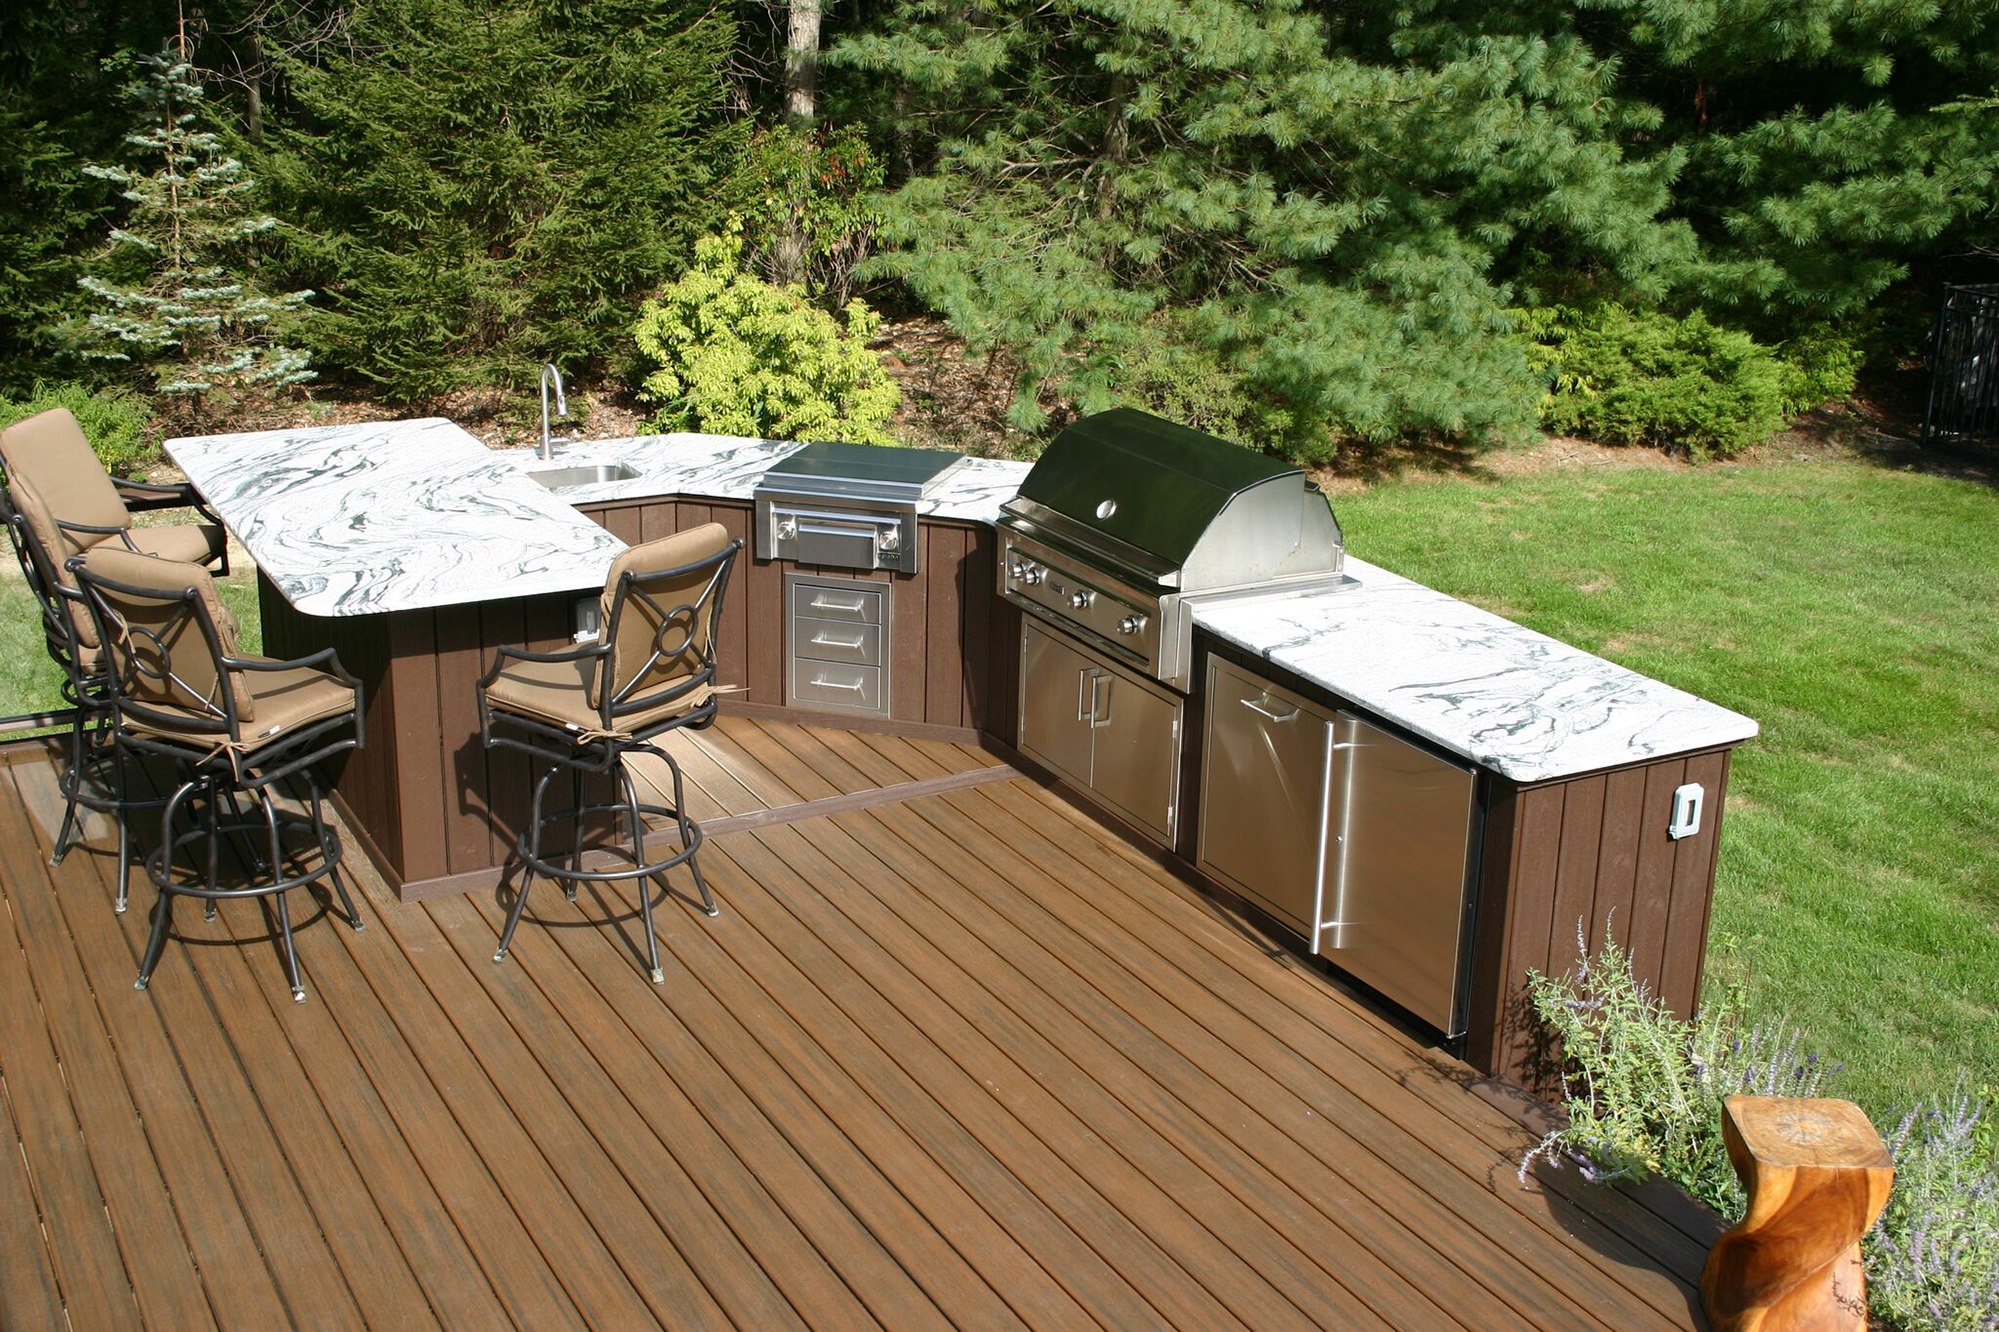 Designing outdoor kitchens professional deck builder for Outdoor kitchen cabinets plans